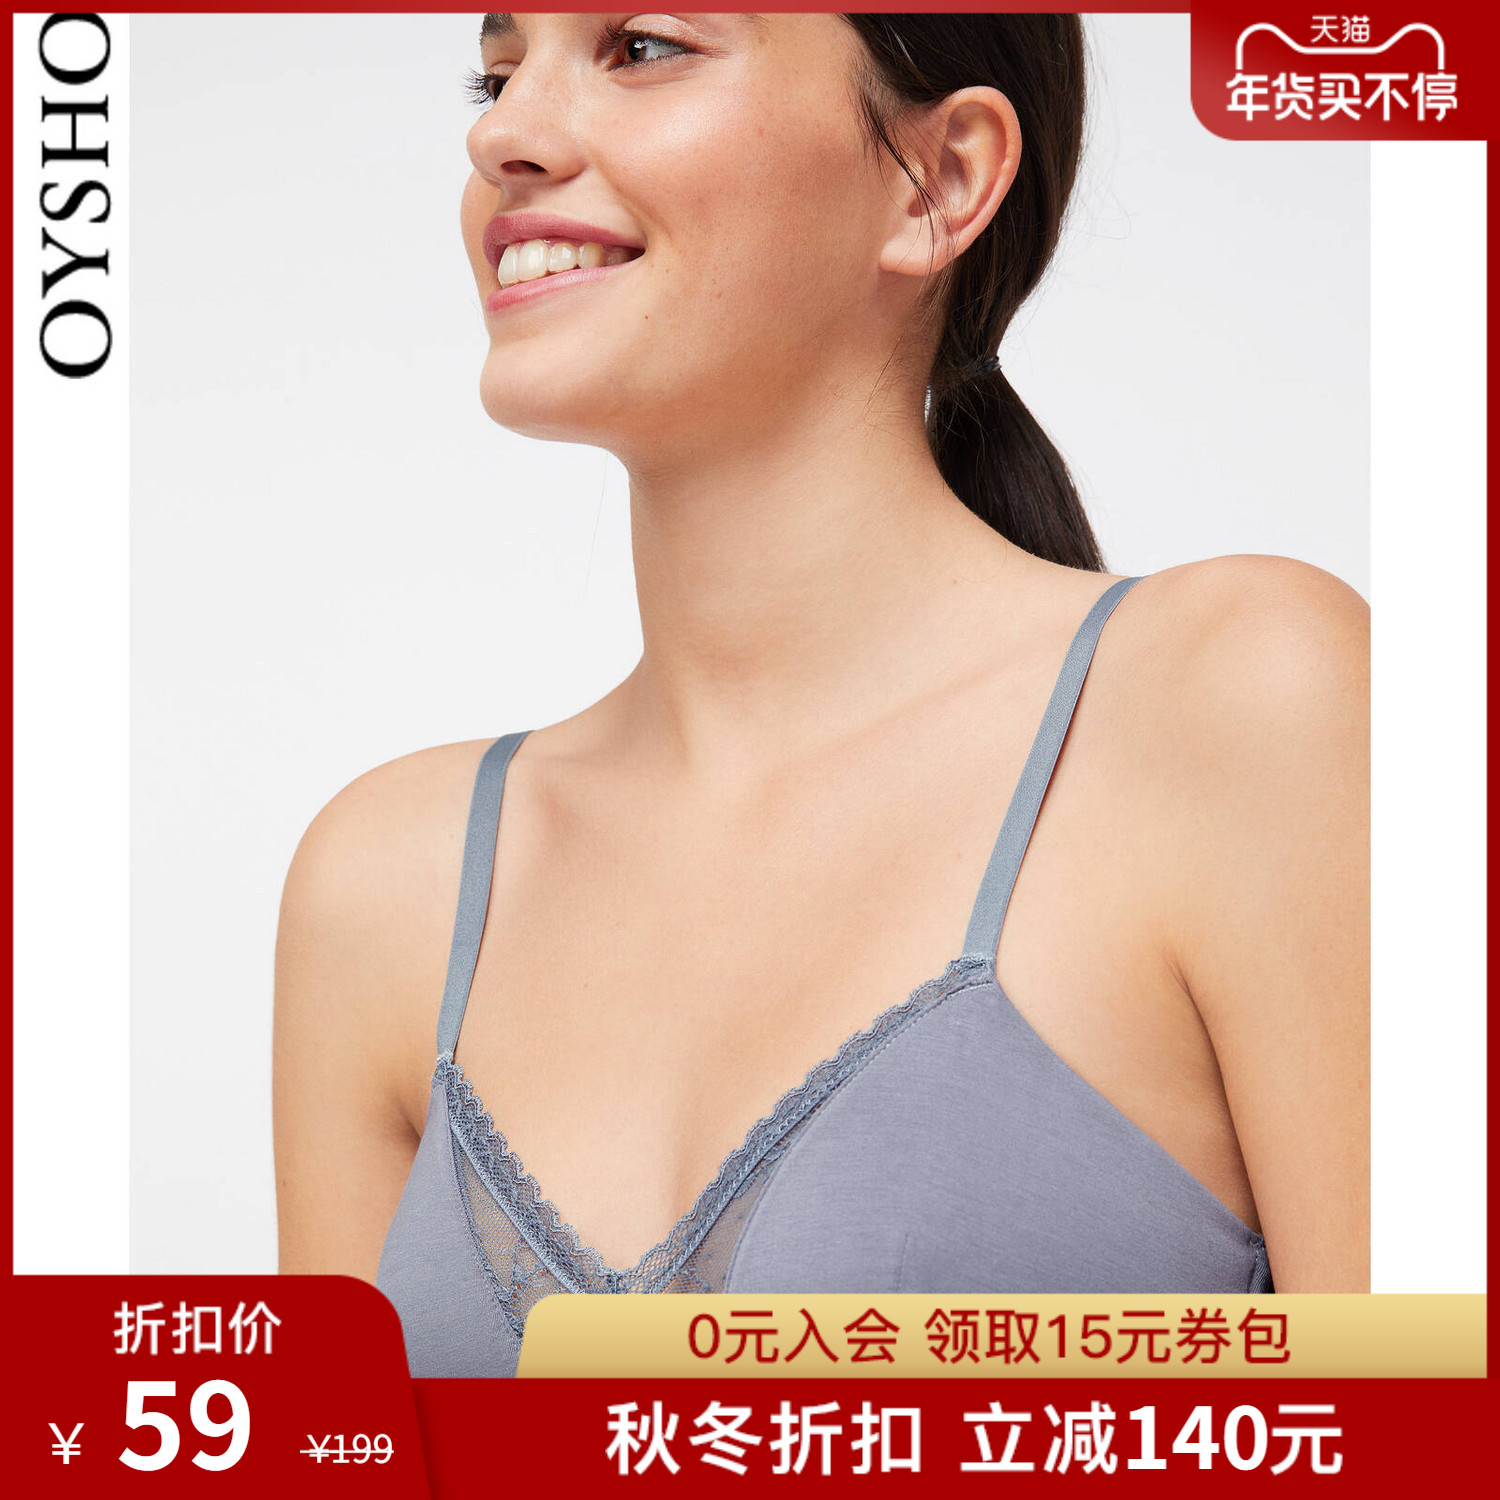 Autumn Winter Discount Oysho Lace Modale Triangle Bra Without Steel Ring Womens Underwear 30189652203